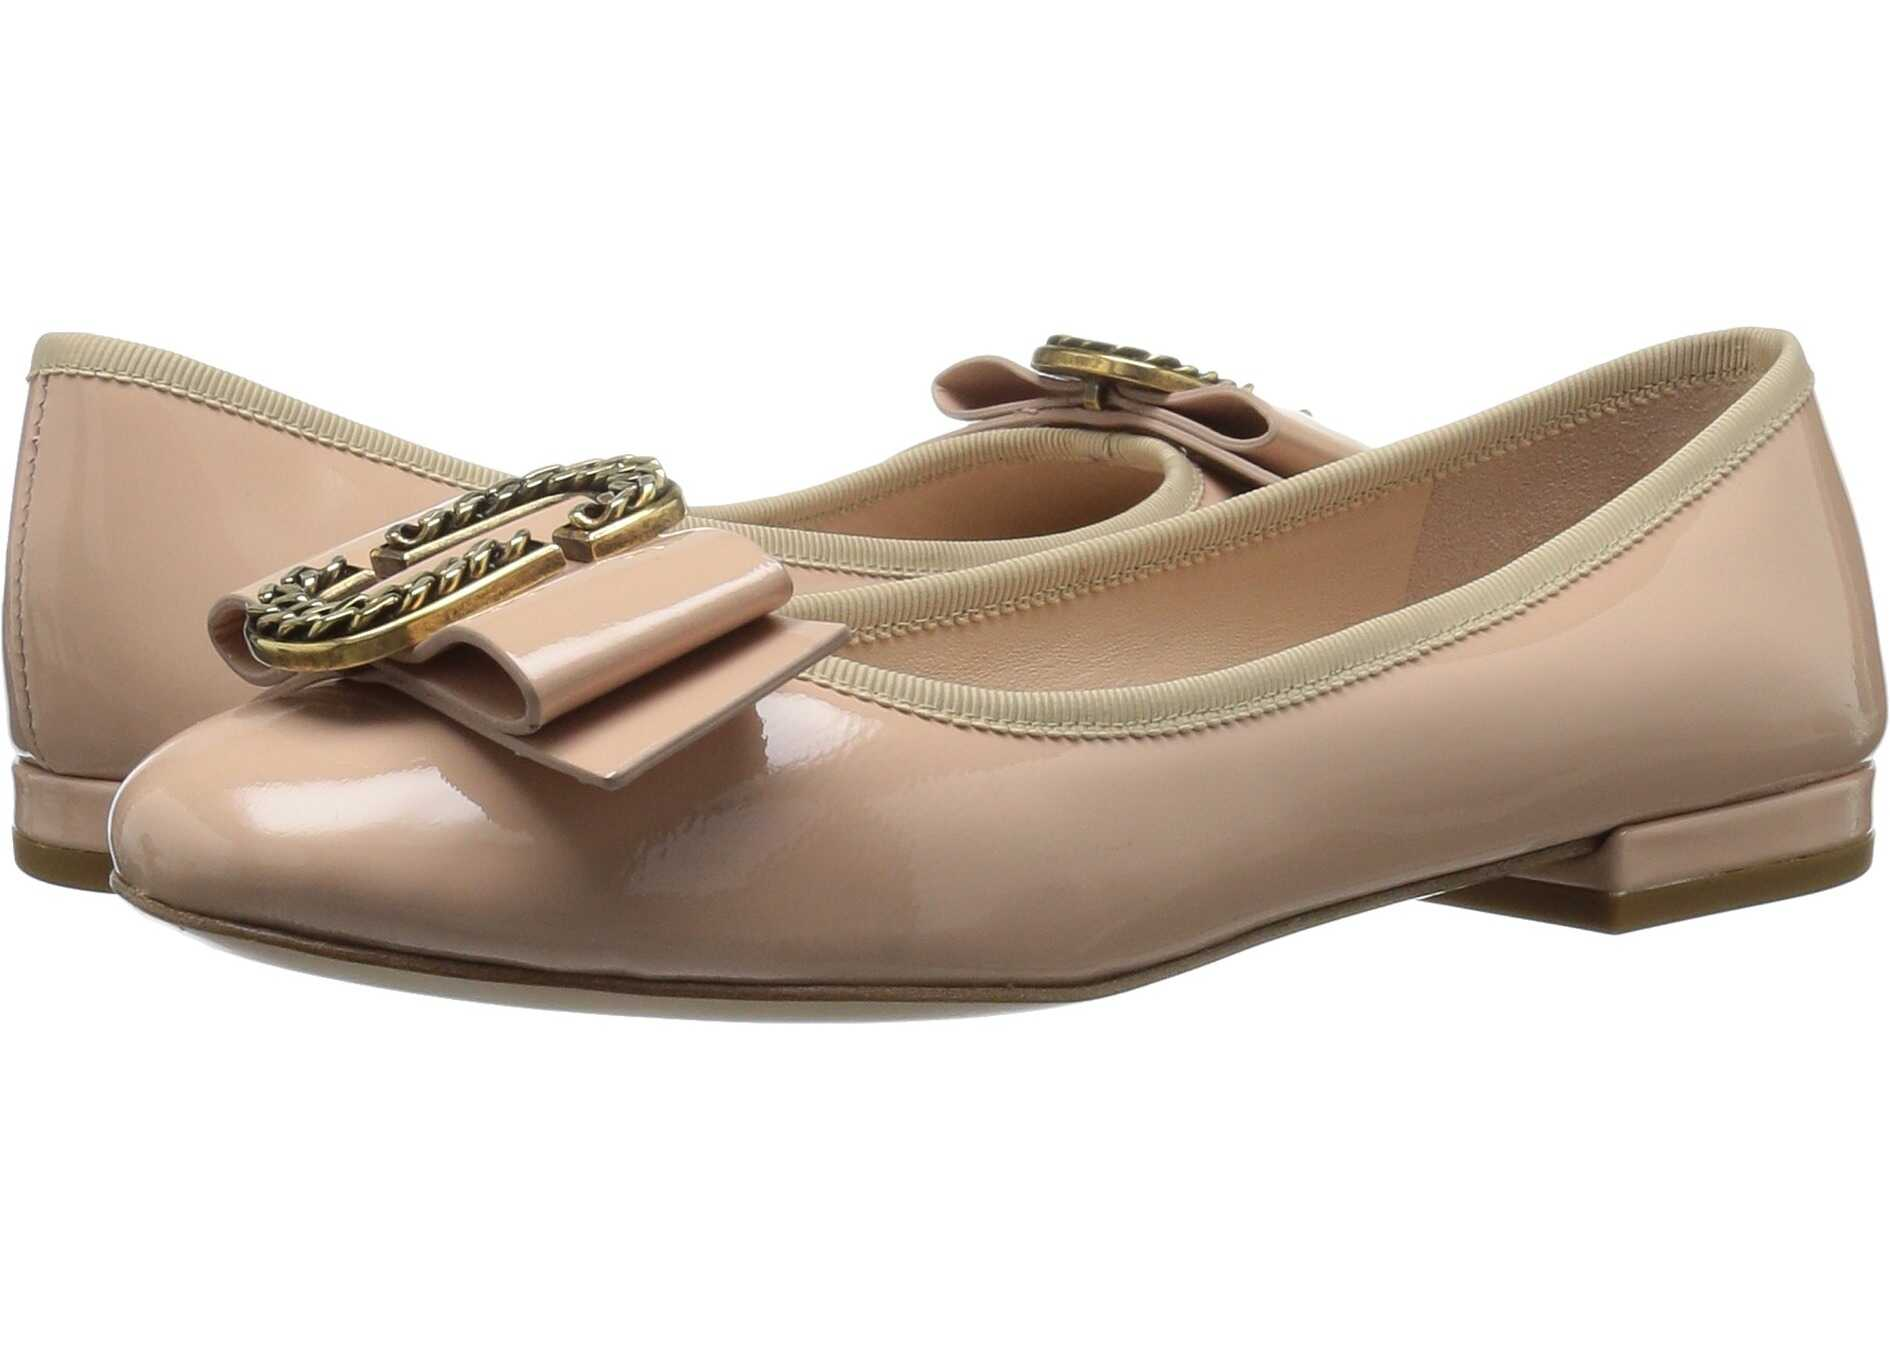 Marc Jacobs Interlock Round Toe Ballerina Nude